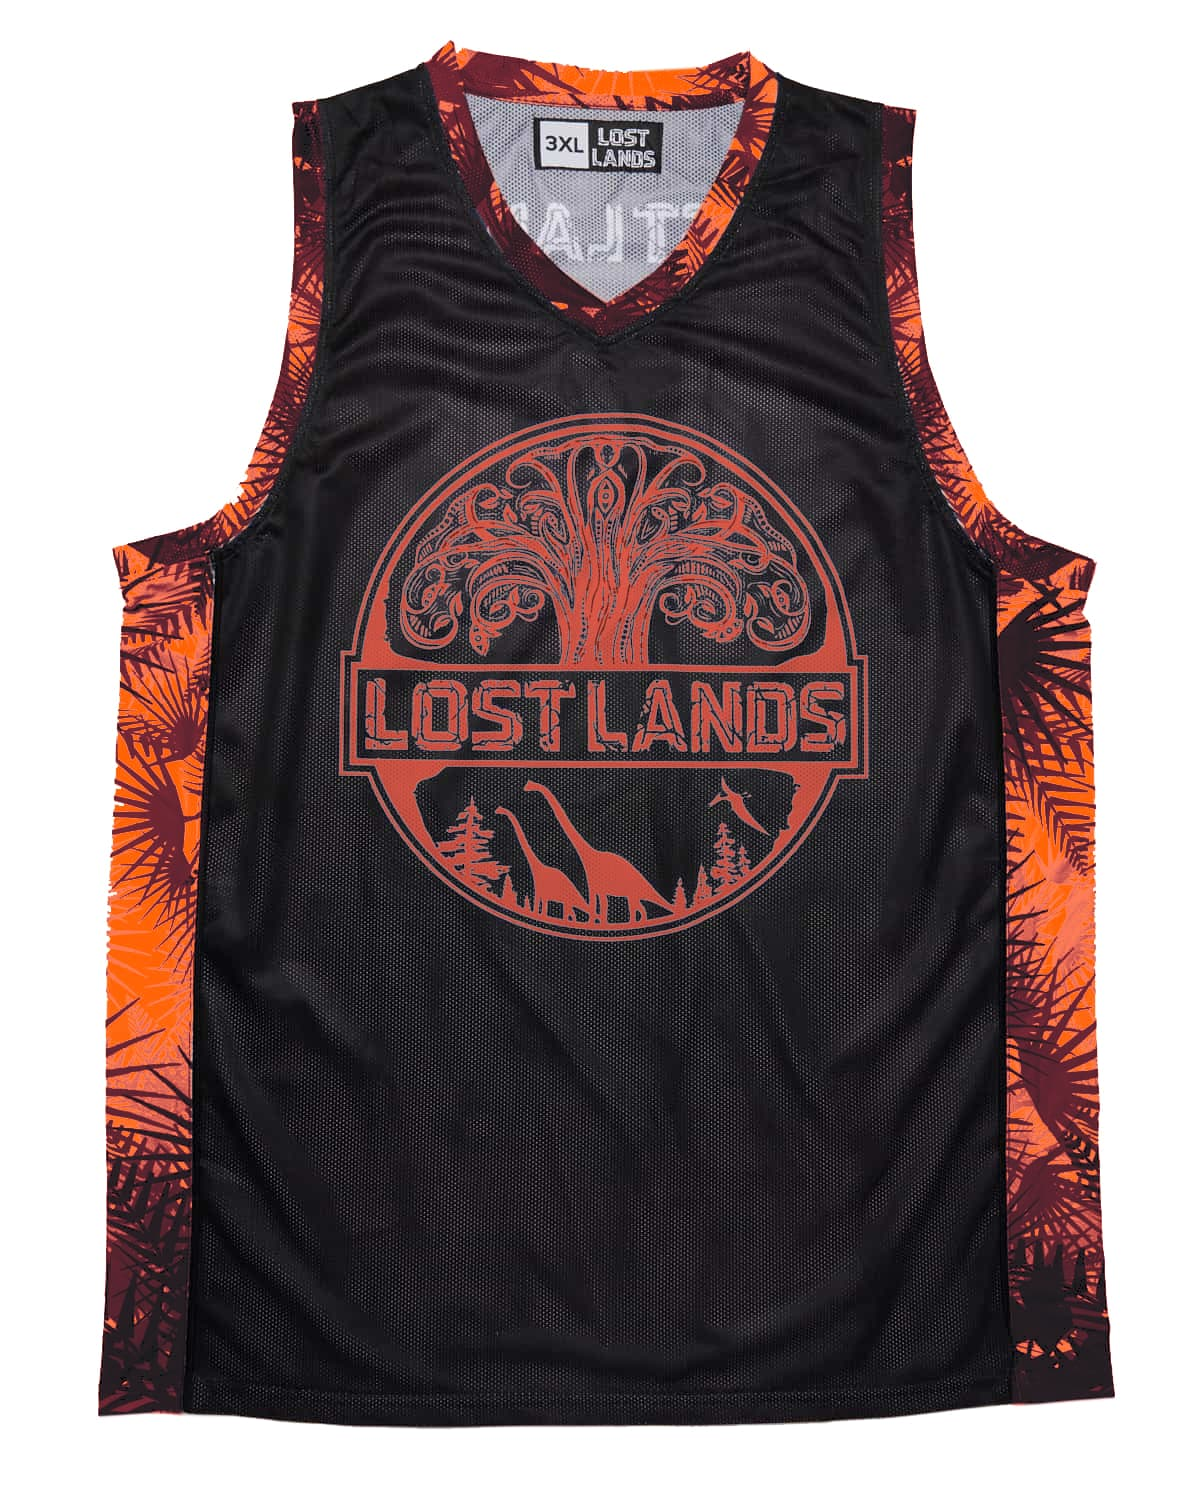 Lost Lands 'Foliage' Basketball Jersey - Black/Red